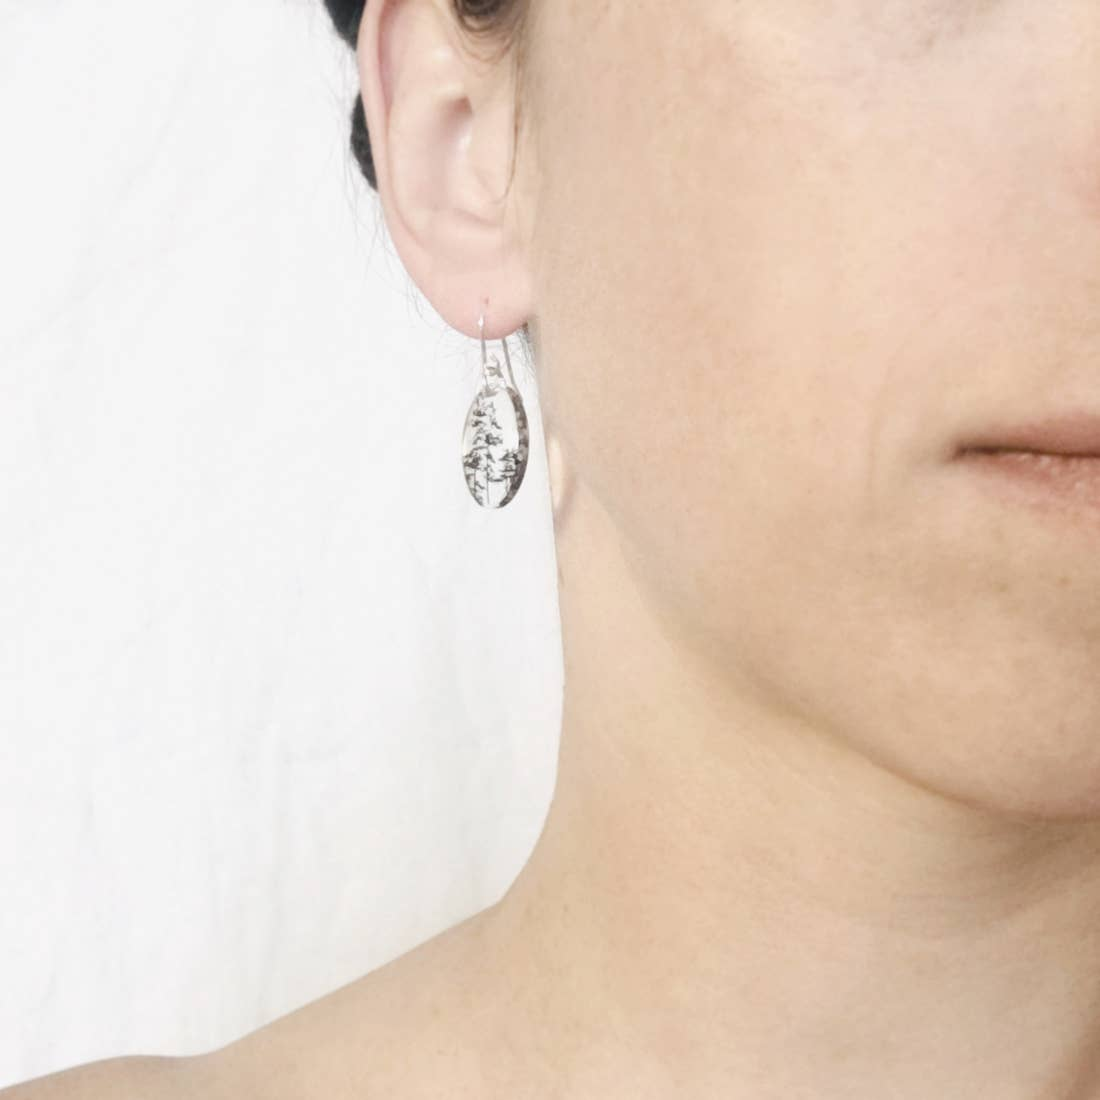 Small Oval Forest Earrings